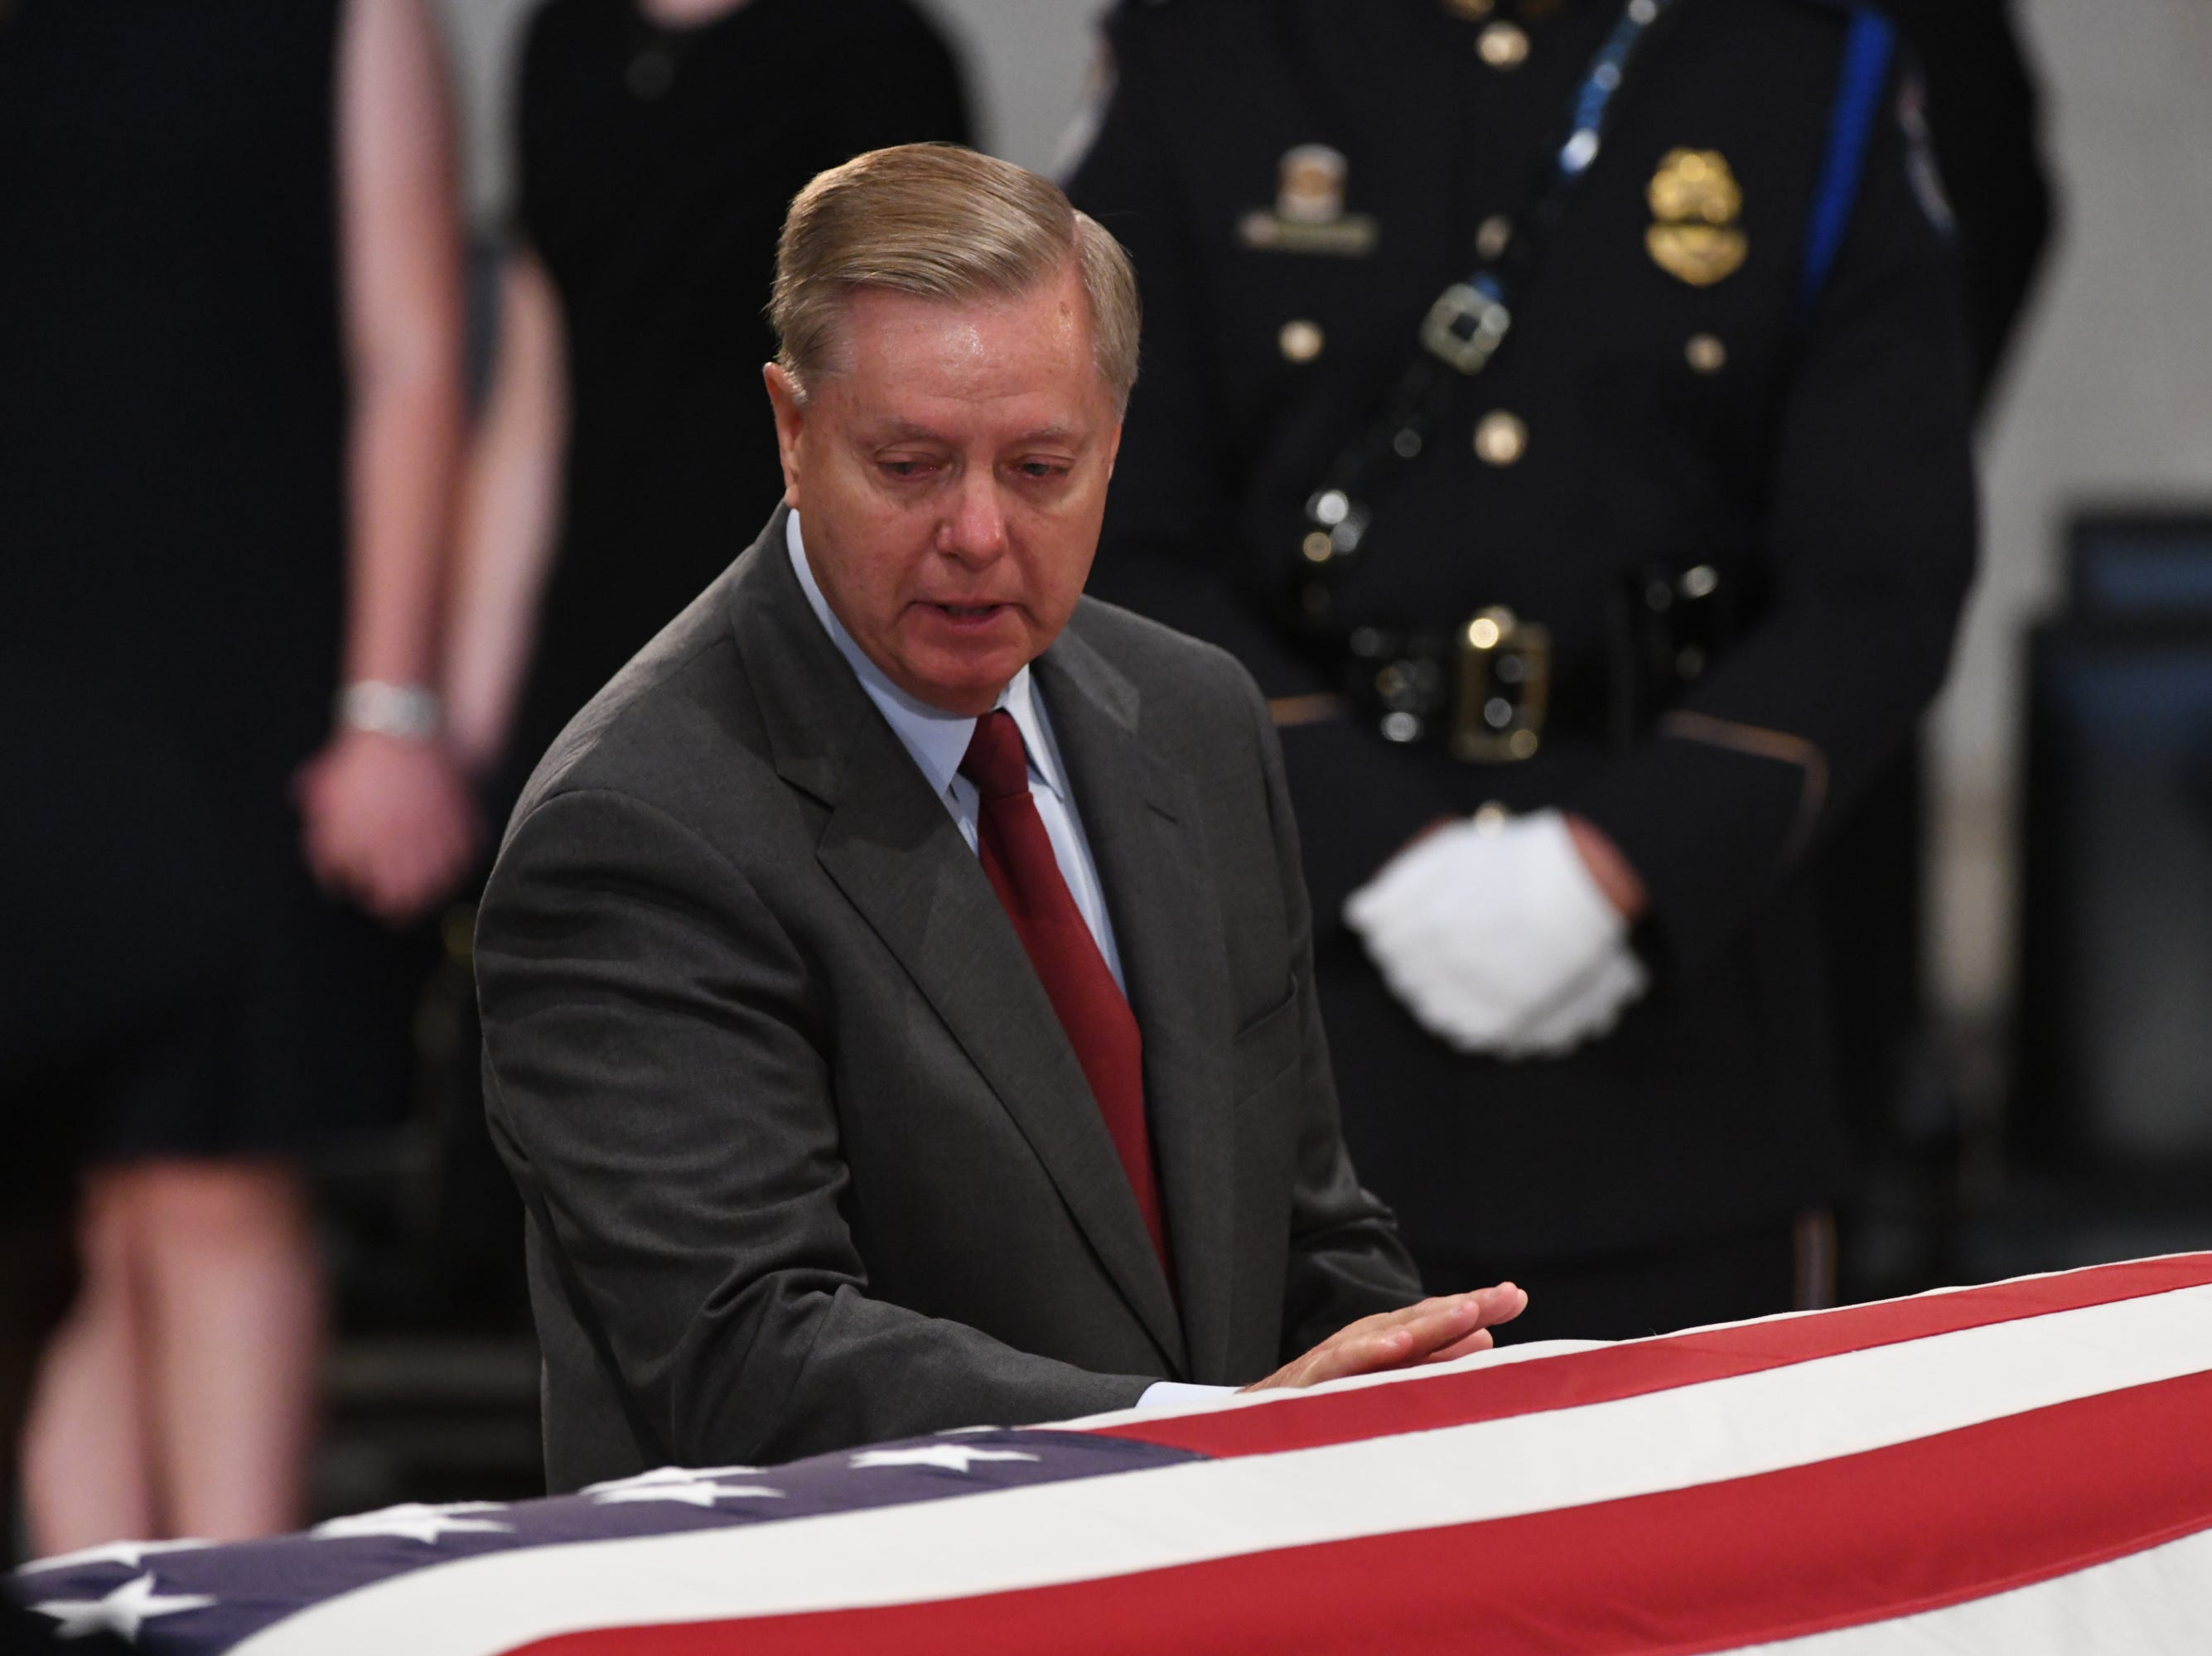 8/31/18 11:35:27 AM -- Washington, DC, U.S.A  -- Lindsey Grahama pays his respects as the body of John McCain lies in state at the U.S. Capitol in Washington on Aug. 31, 2018 in Washington. Sen. McCain died on Aug. 25. --    Photo by Jasper Colt, USA TODAY Staff